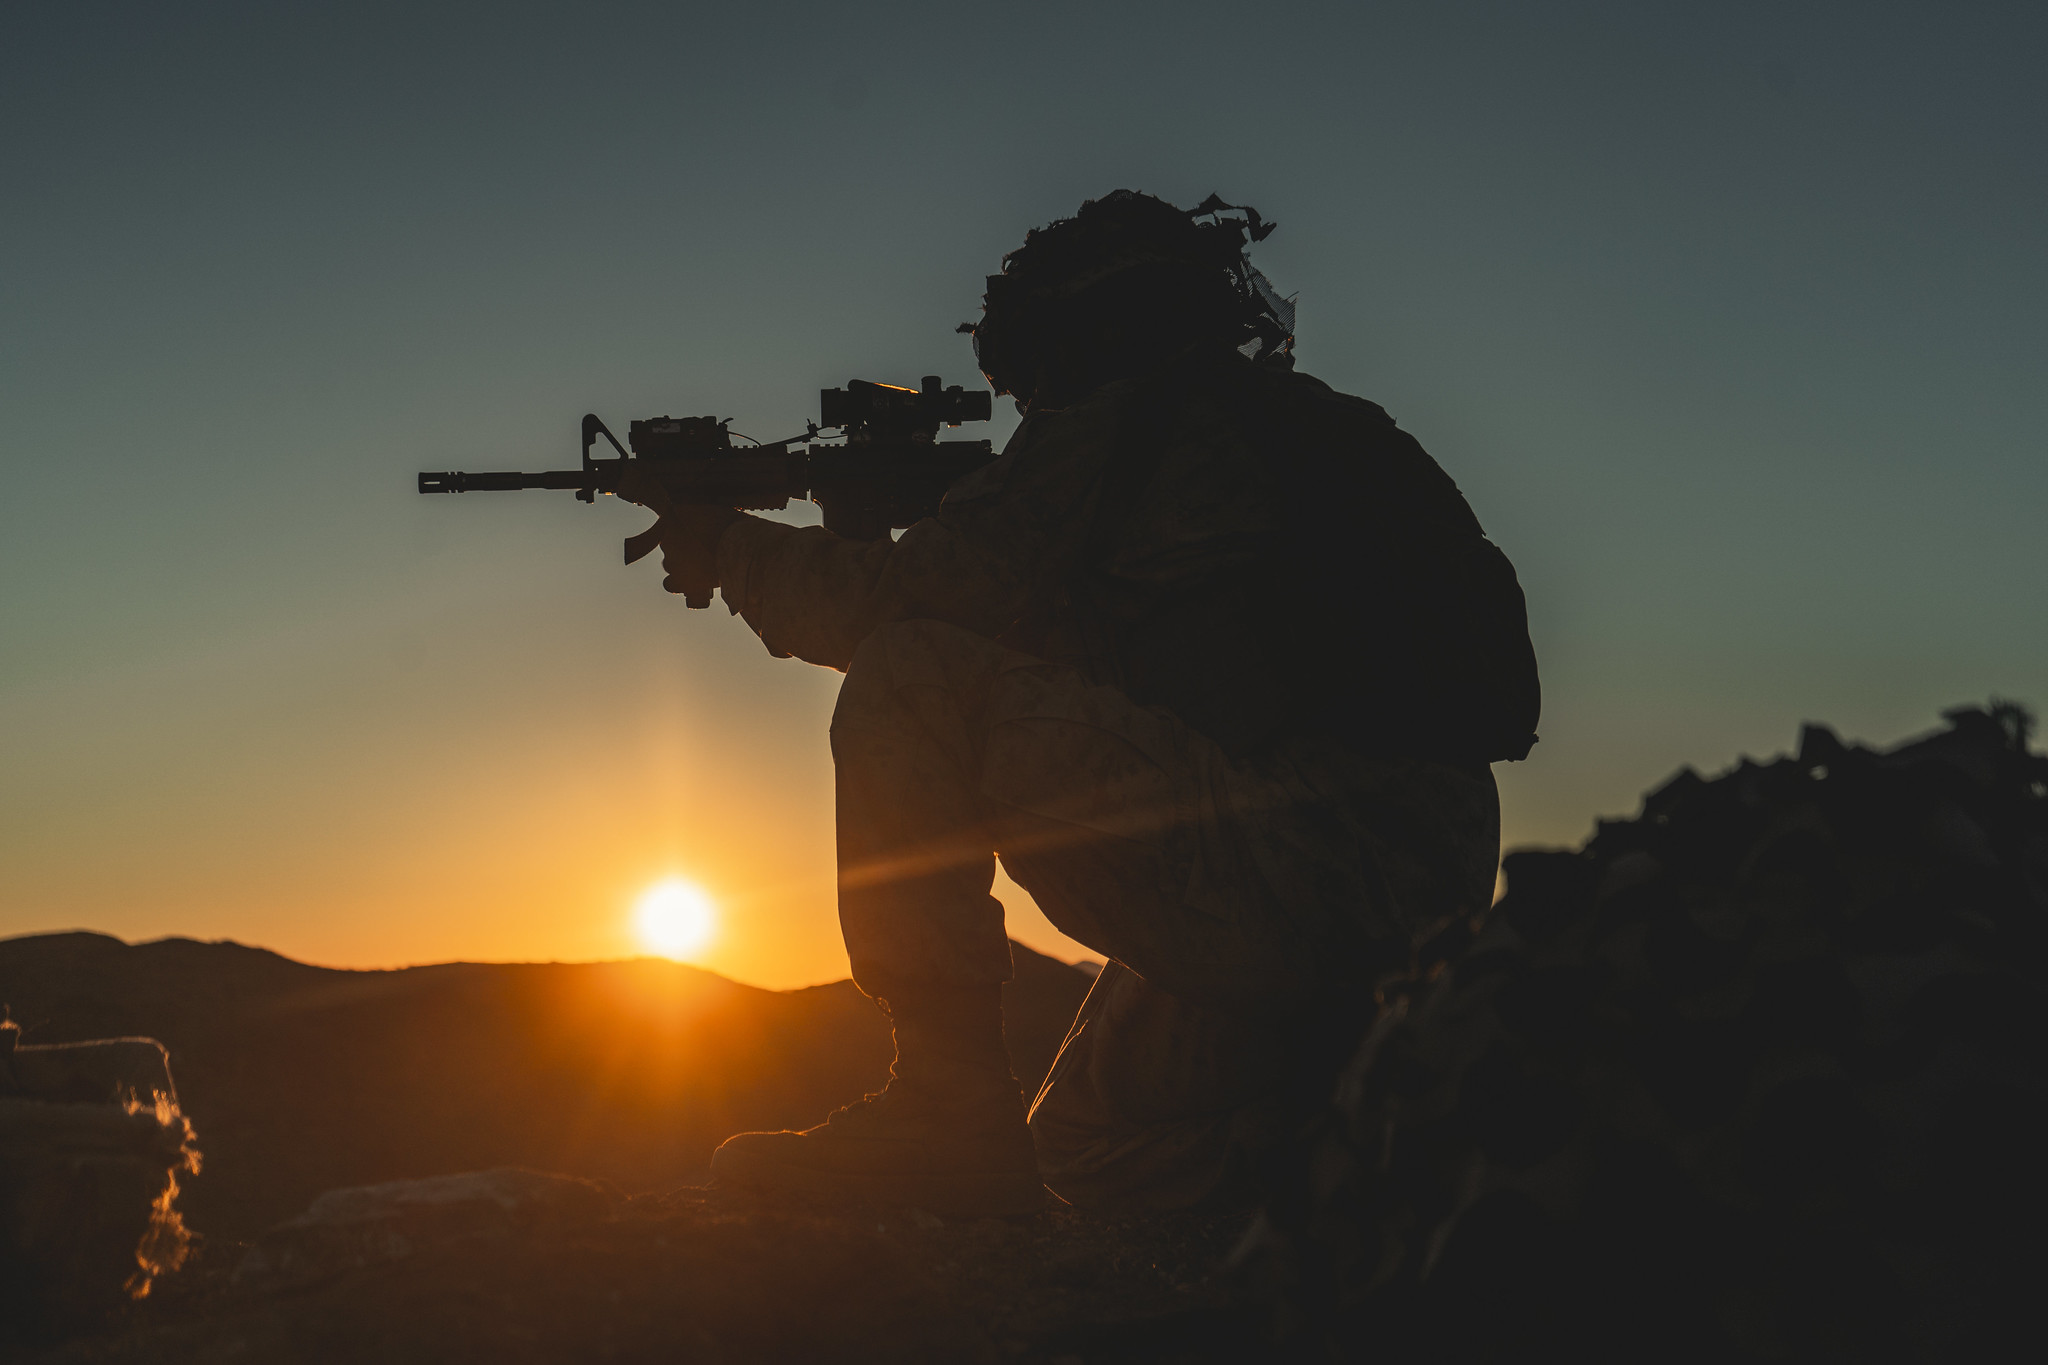 Hospitalman Keifer Ralph sets into a defensive position in support of the Battalion Distributed Operations Course during Service Level Training Exercise 1-21 at Marine Corps Air Ground Combat Center Twentynine Palms, Calif., Oct. 28, 2020. (Lance Cpl. Juan Carpanzano/Marine Corps)